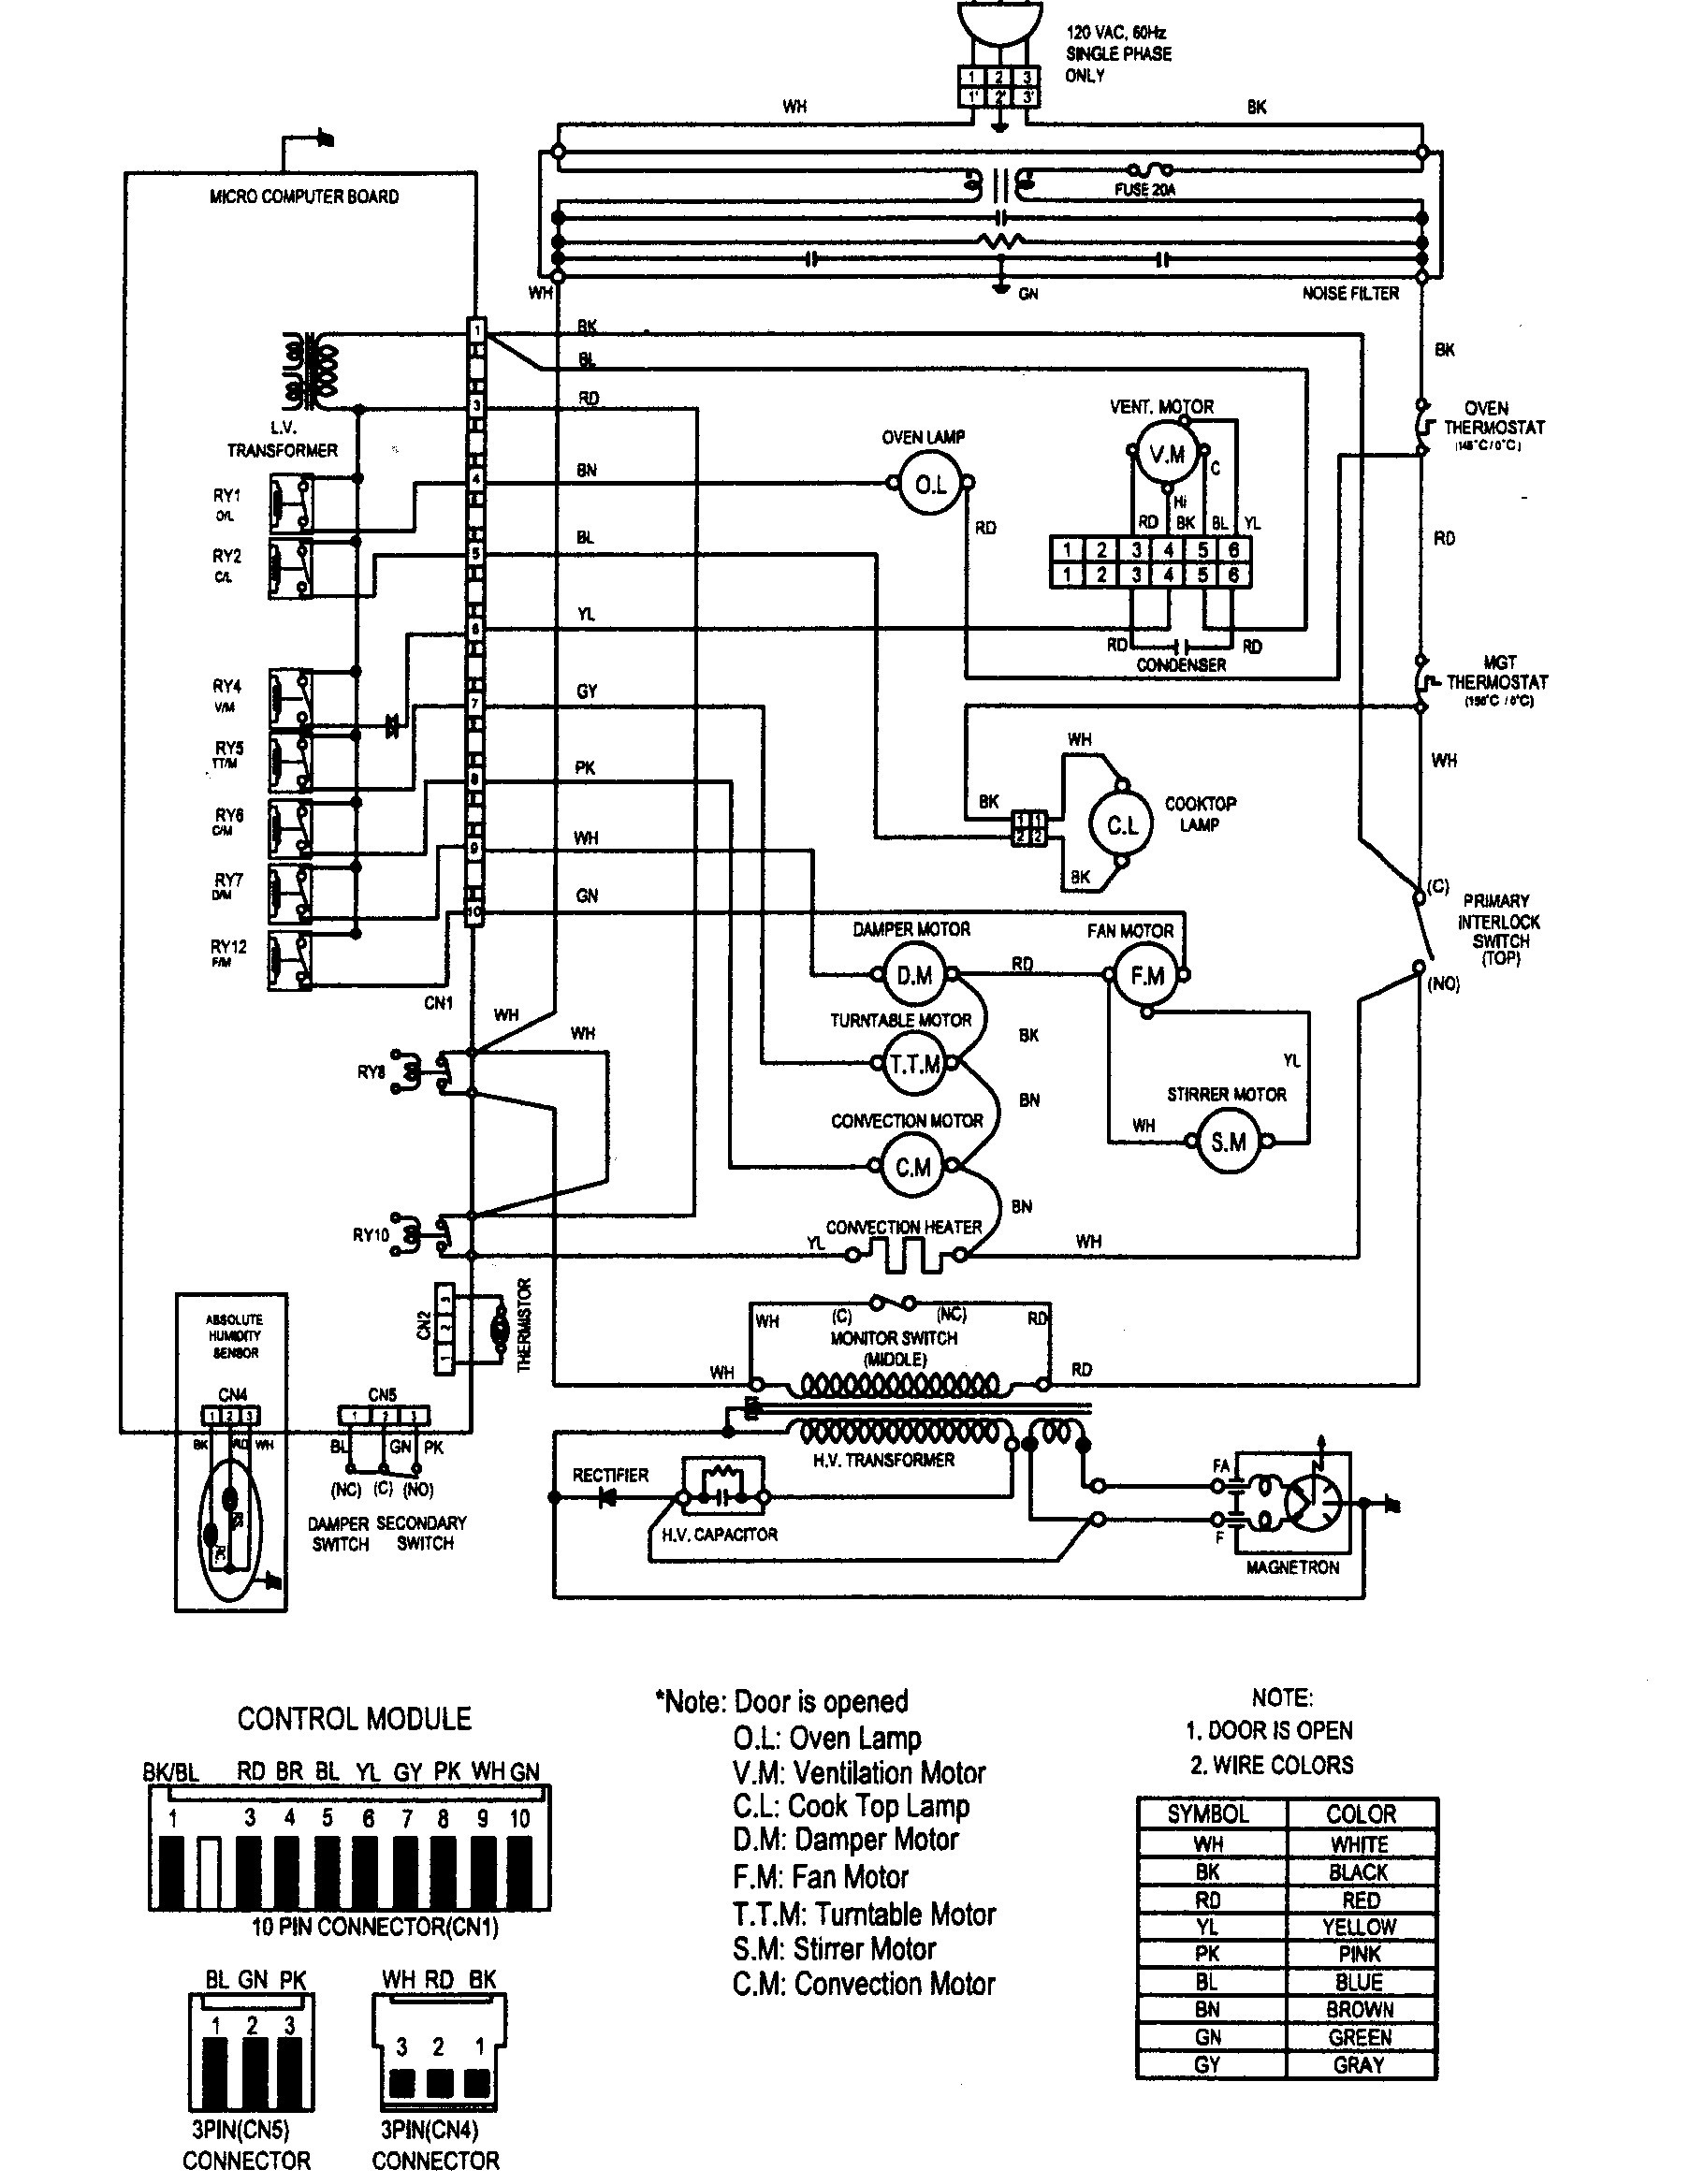 Kenmore 116 51612002 Wiring Diagram Complete Wiring Diagrams \u2022 Kenmore  Washer Wiring Diagram Kenmore Elite 110 Wiring Diagram